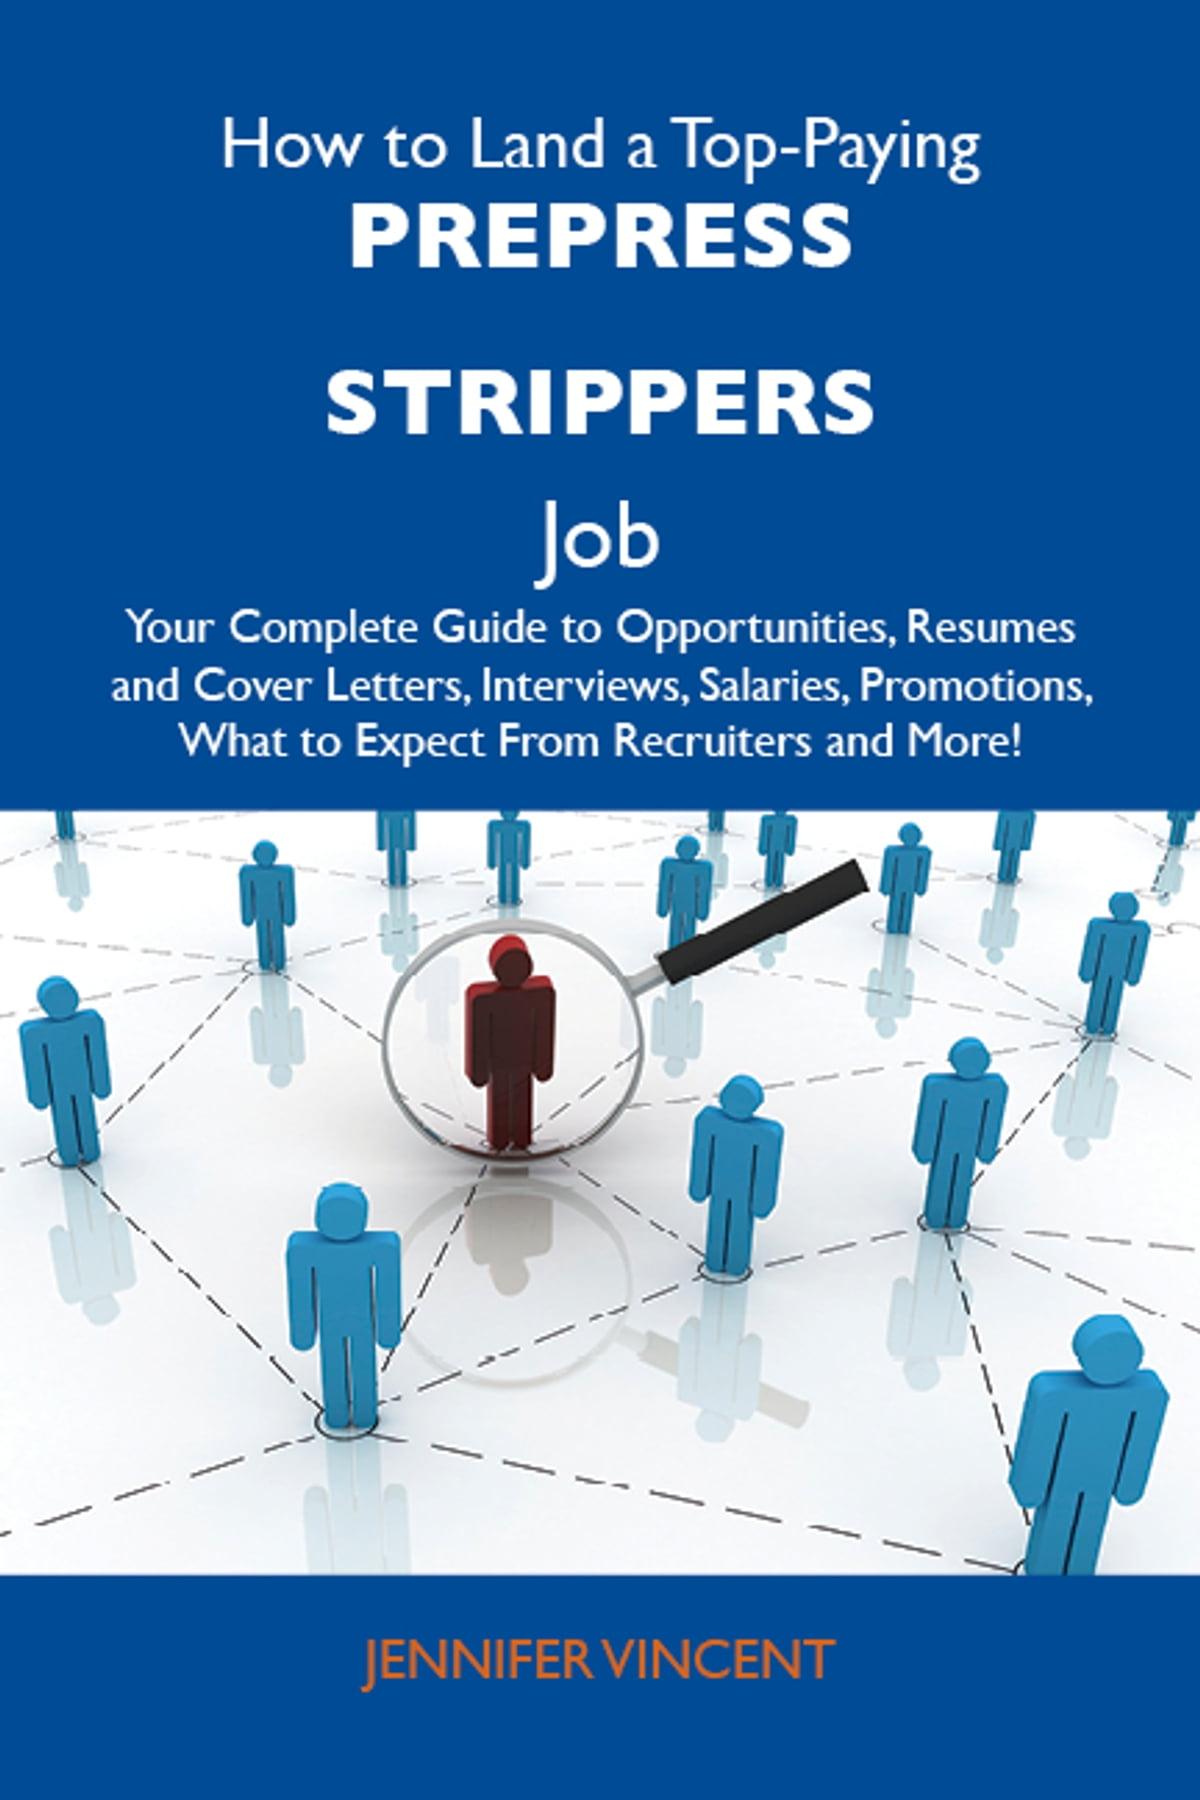 How to Land a Top-Paying Prepress strippers Job: Your Complete Guide to  Opportunities, Resumes and Cover Letters, Interviews, Salaries, Promotions,  ...